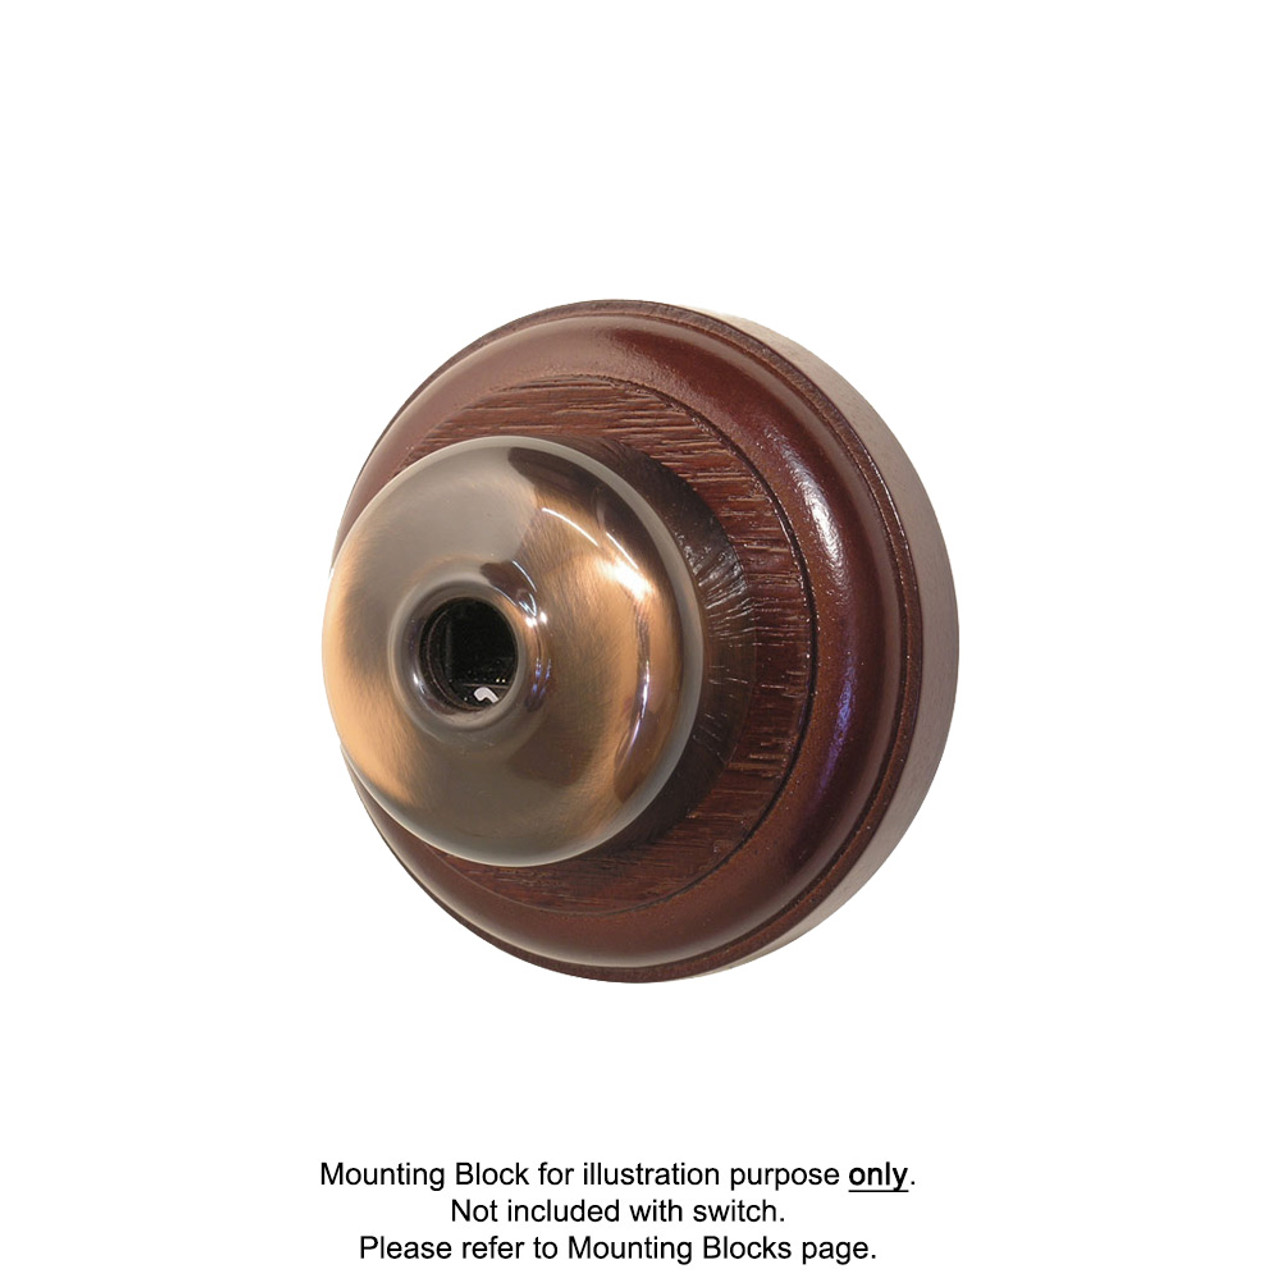 Old Heritage Clipsal Classic Data Socket Smooth Covered - Florentine Bronze